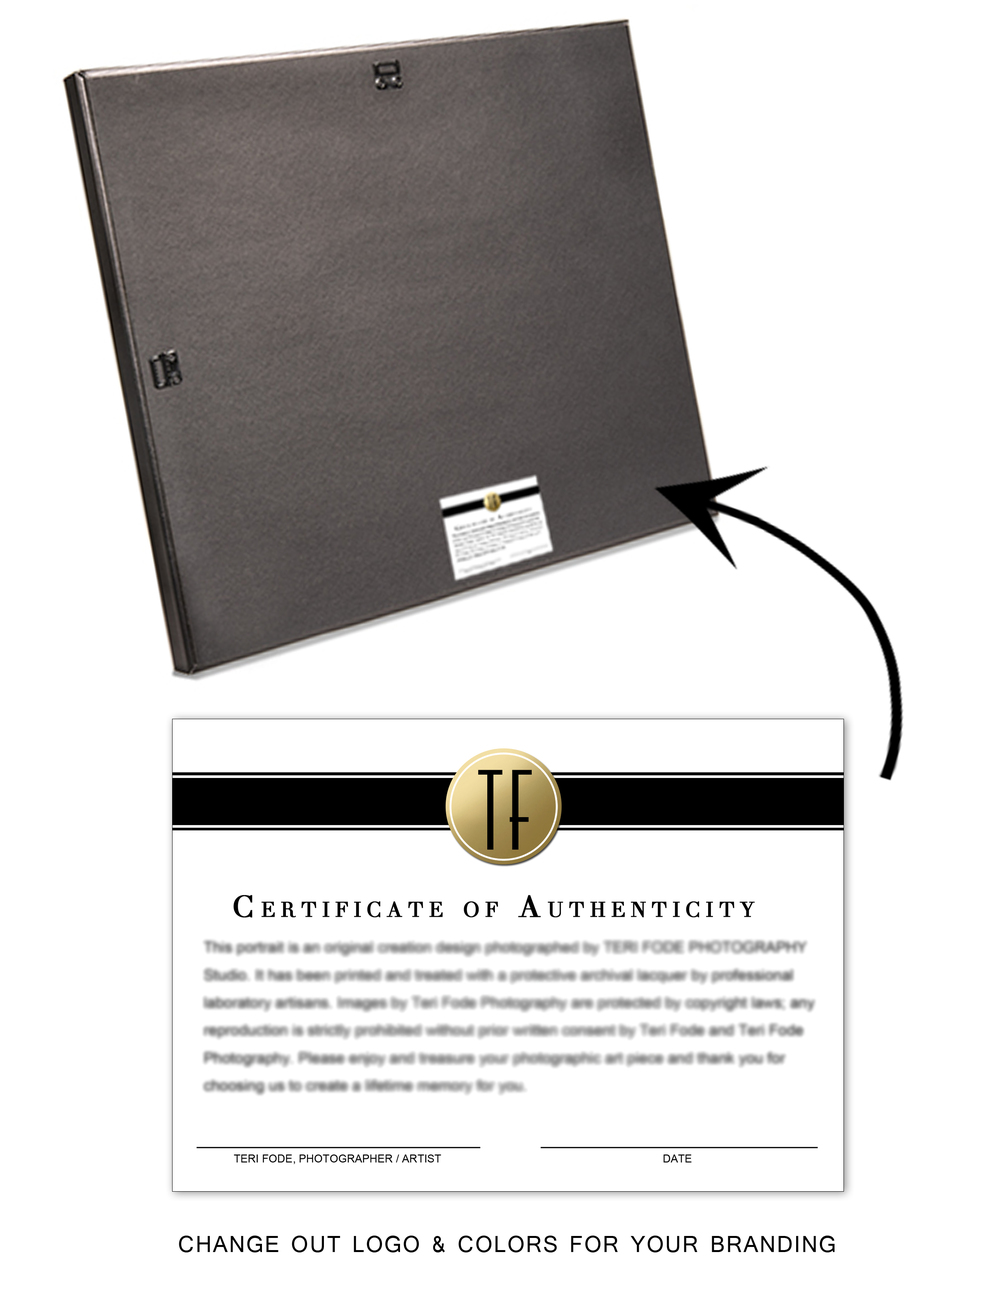 CERTIFICATE OF AUTHENTICITY to promote your art and your professional artistry on the back of your canvas work and portraits as well as to state your copyright. Insert your own logo/colors. Order as a 5x7 sticker from your lab. Printed portraits are for life.